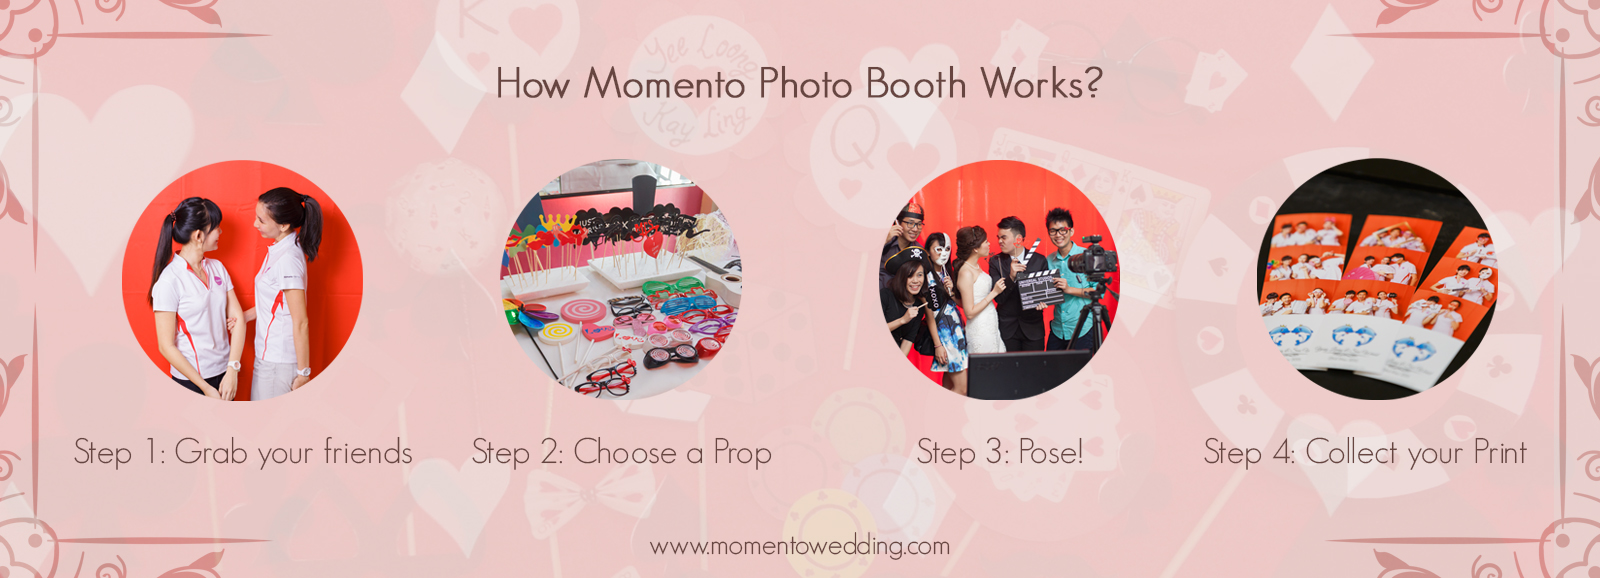 Momento Live Print Photo Booth